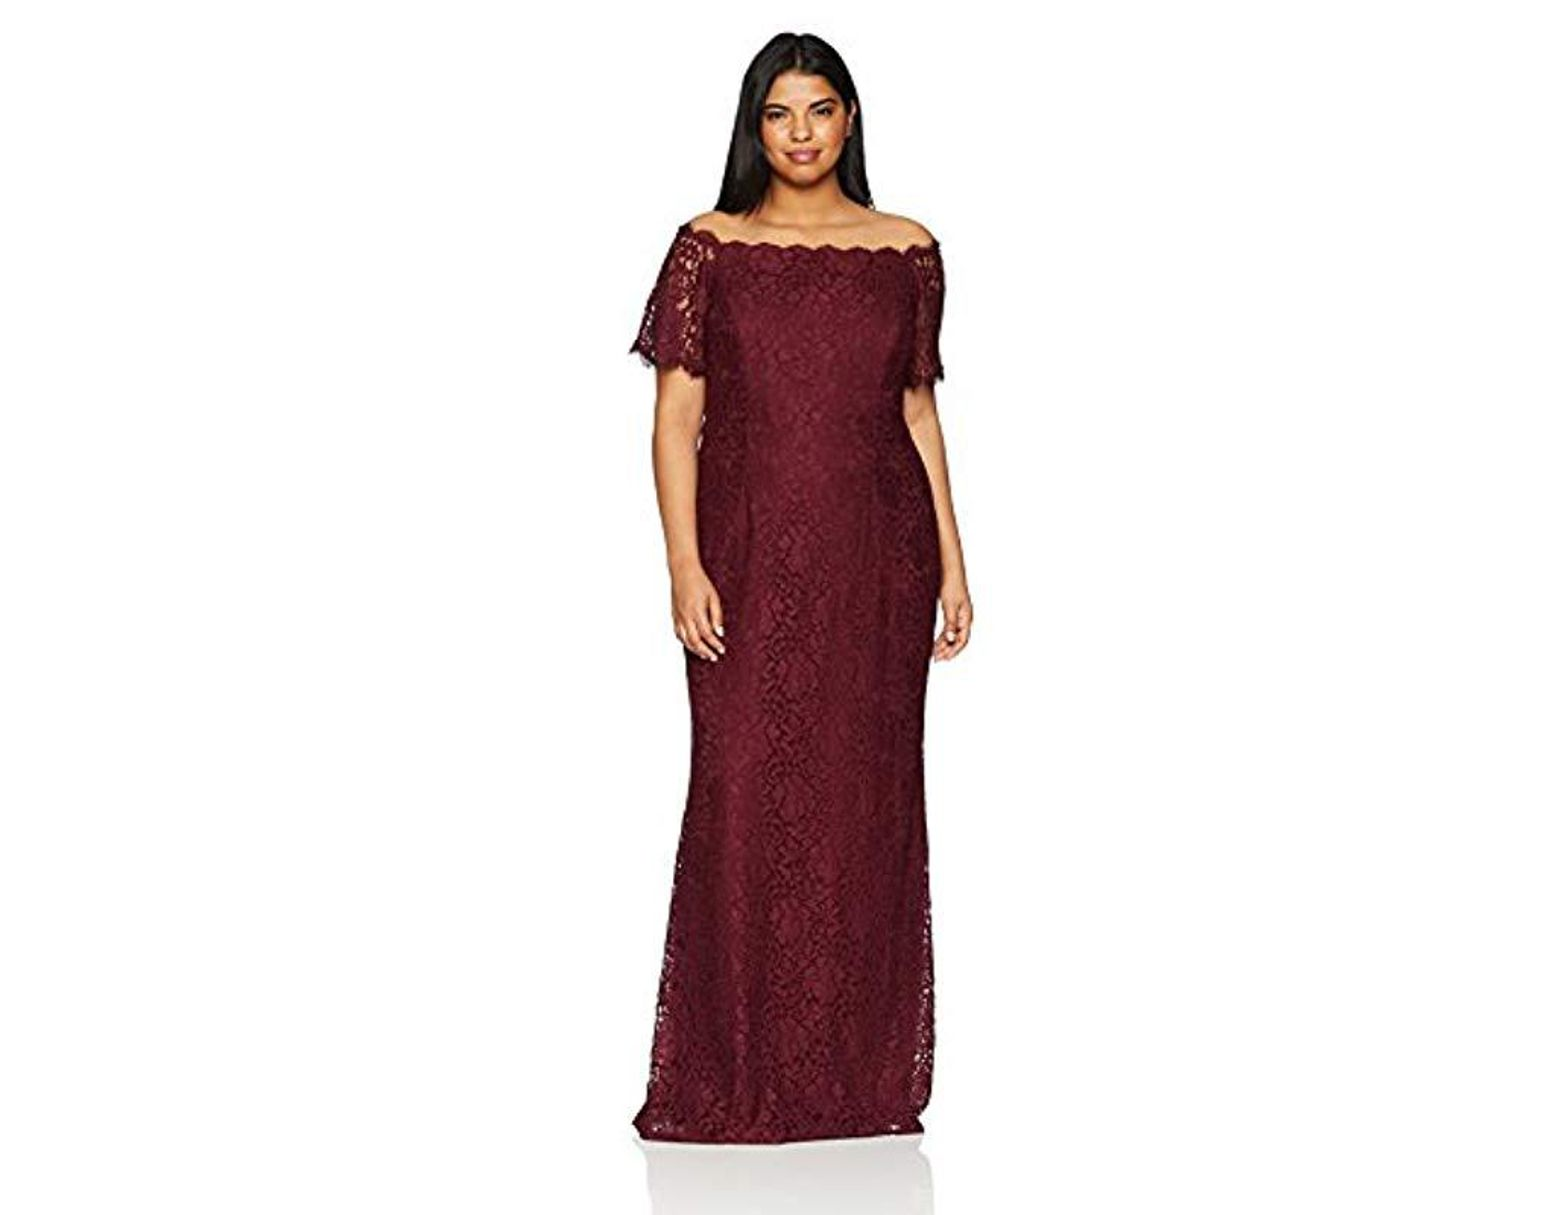 f6c1b5a5 Adrianna Papell Plus Size Lace Off The Shoulder Mermaid Skirt Long Dress in  Purple - Lyst